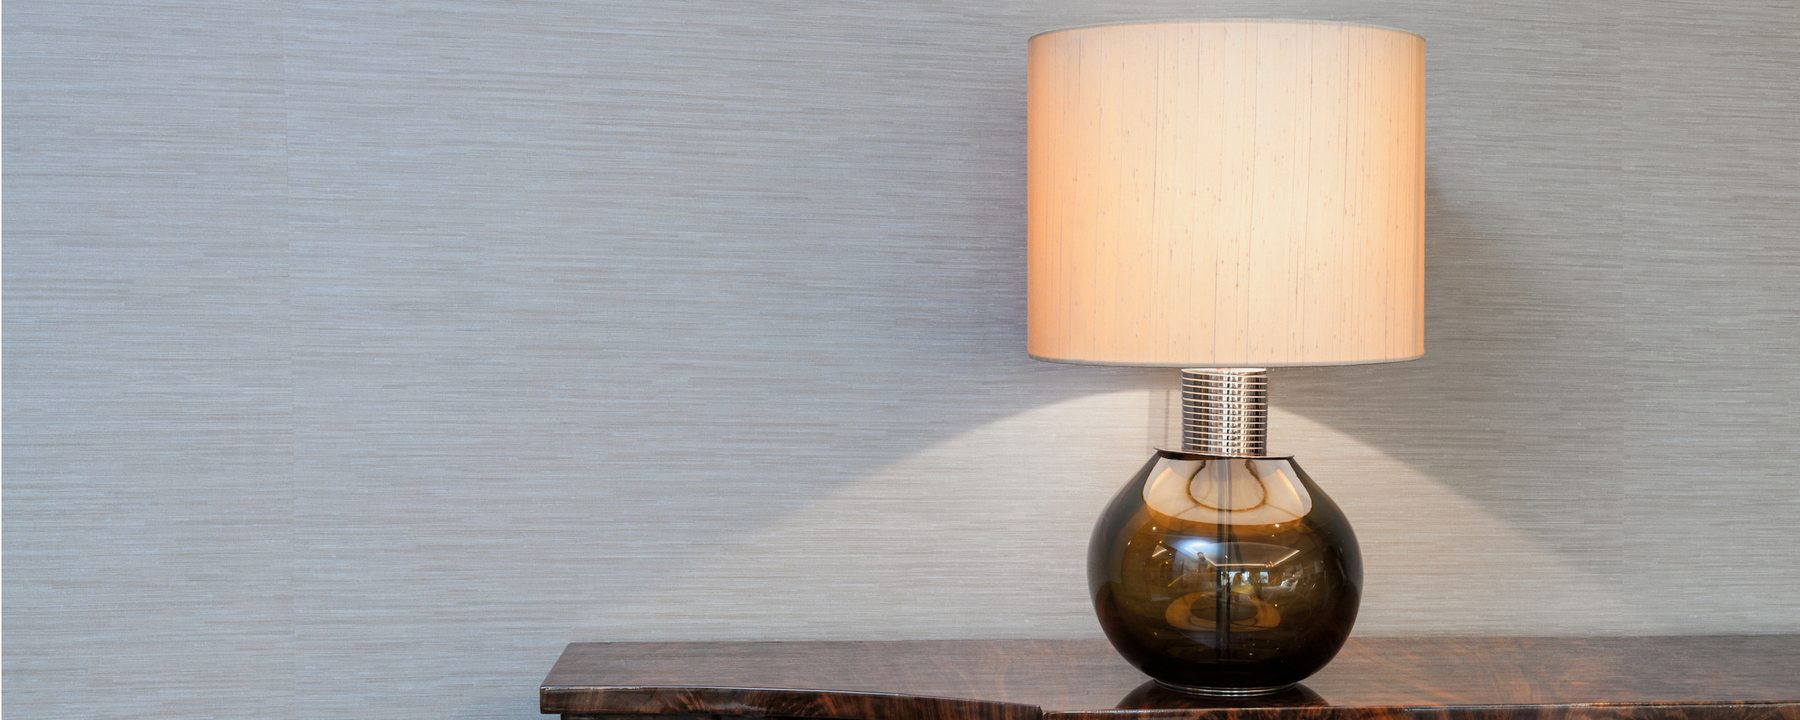 A Lamp Shade Guide: How to Choose the Right Size of Lamp Shade